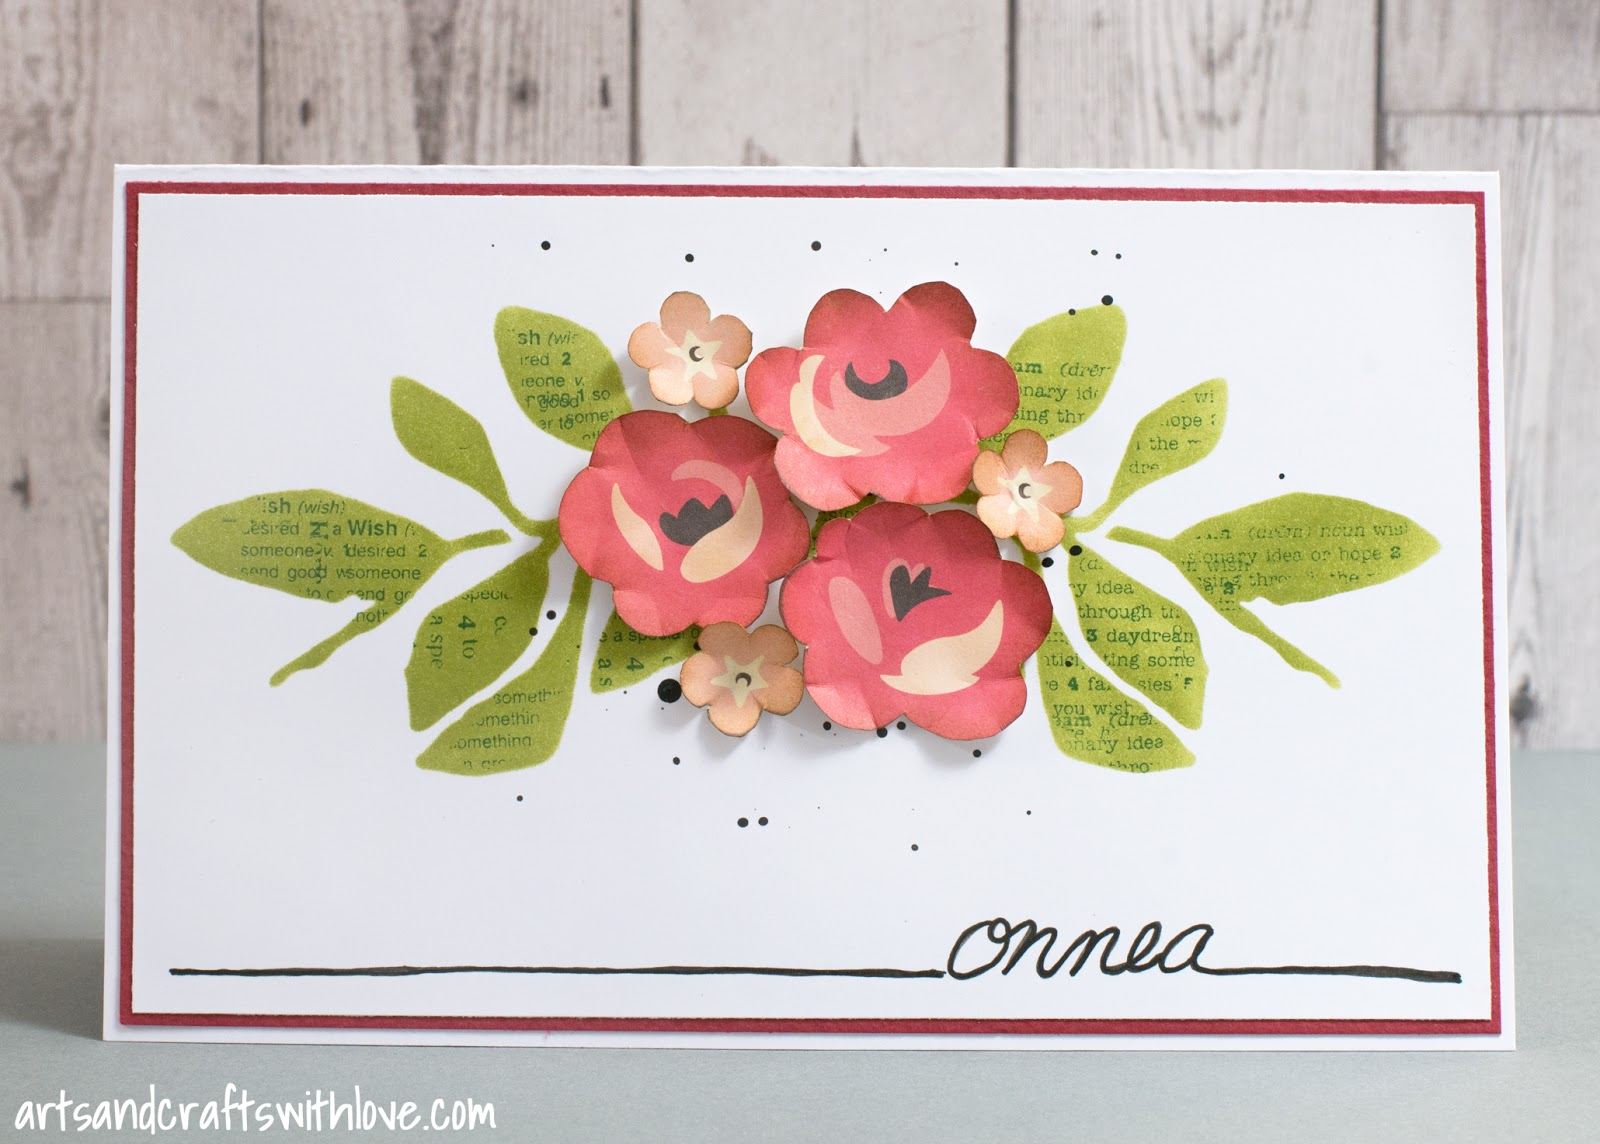 Cardmaking: Card with stencilled background